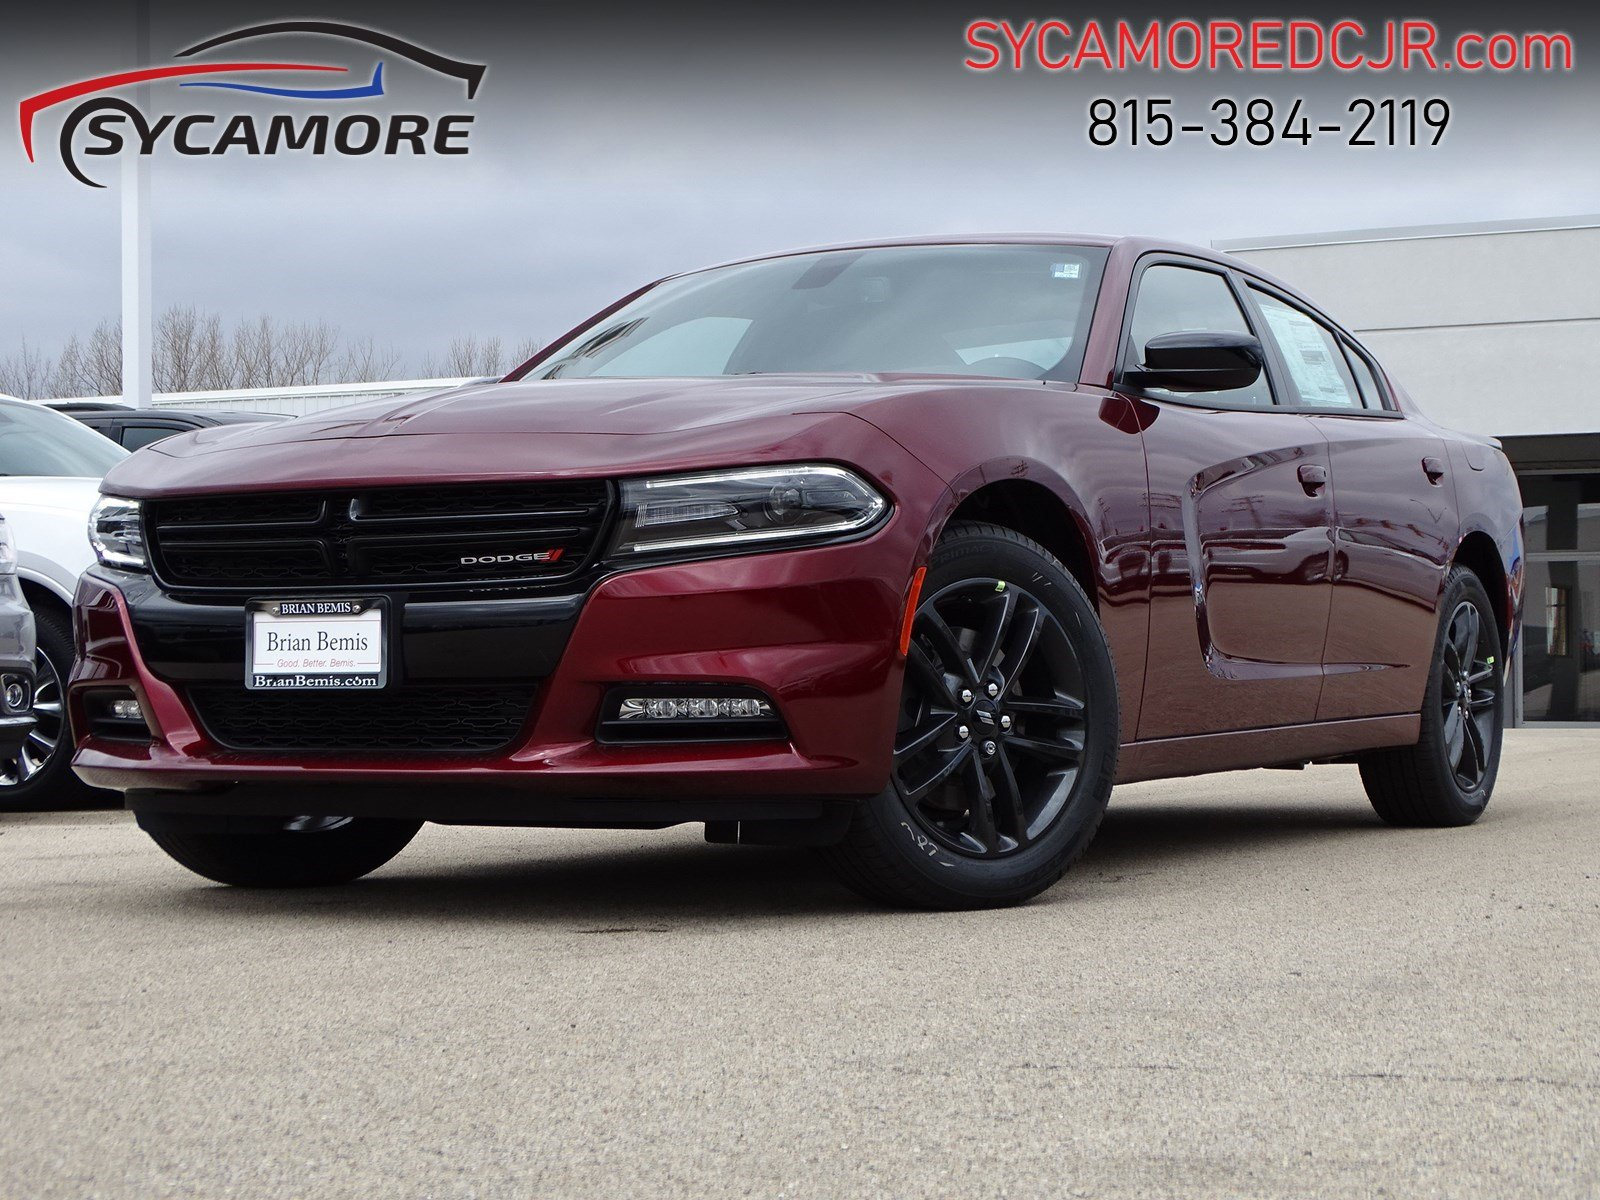 New 2019 Dodge Charger Sxt Sedan In Sycamore C19 179 Sycamore